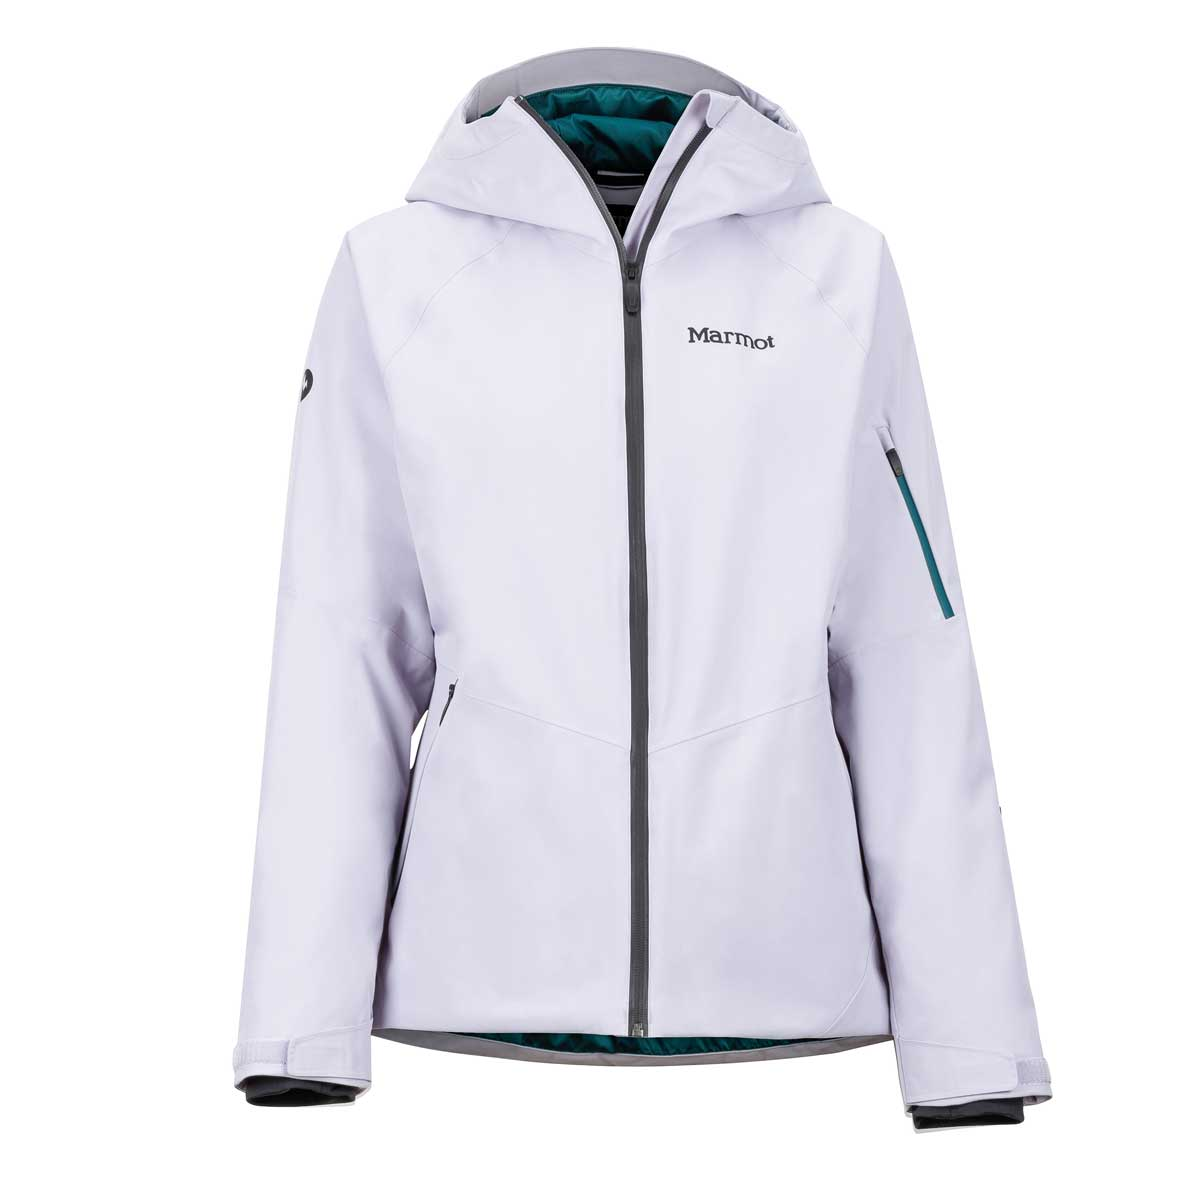 Marmot Women's Refuge Jacket in Lavender Aura